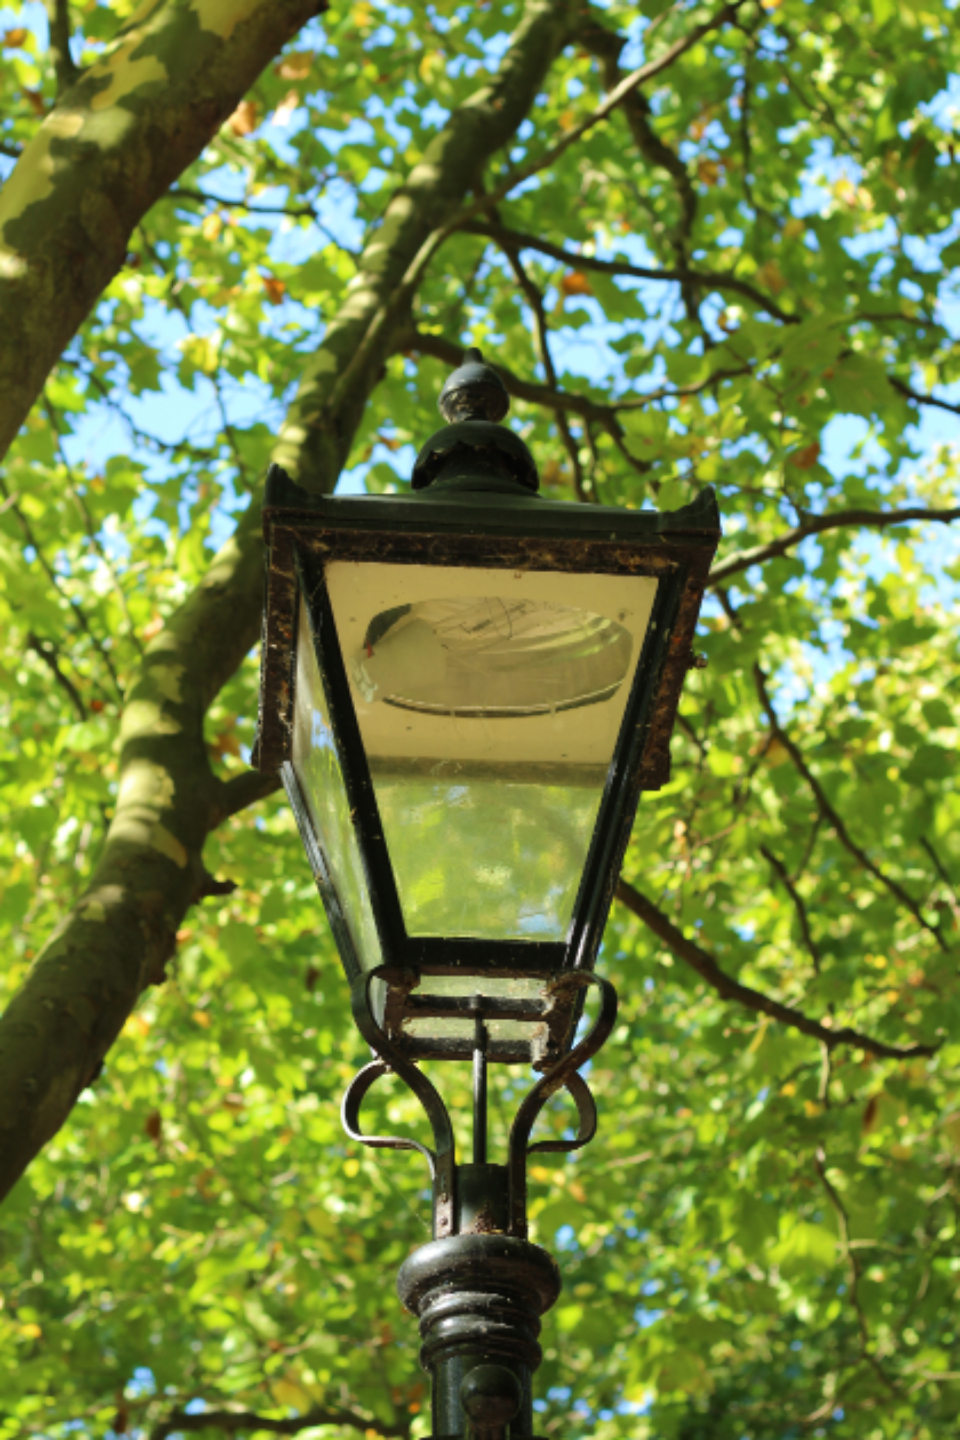 light lamp lamp post lampost vintage lamp old lamp lamp in park park trees leaves